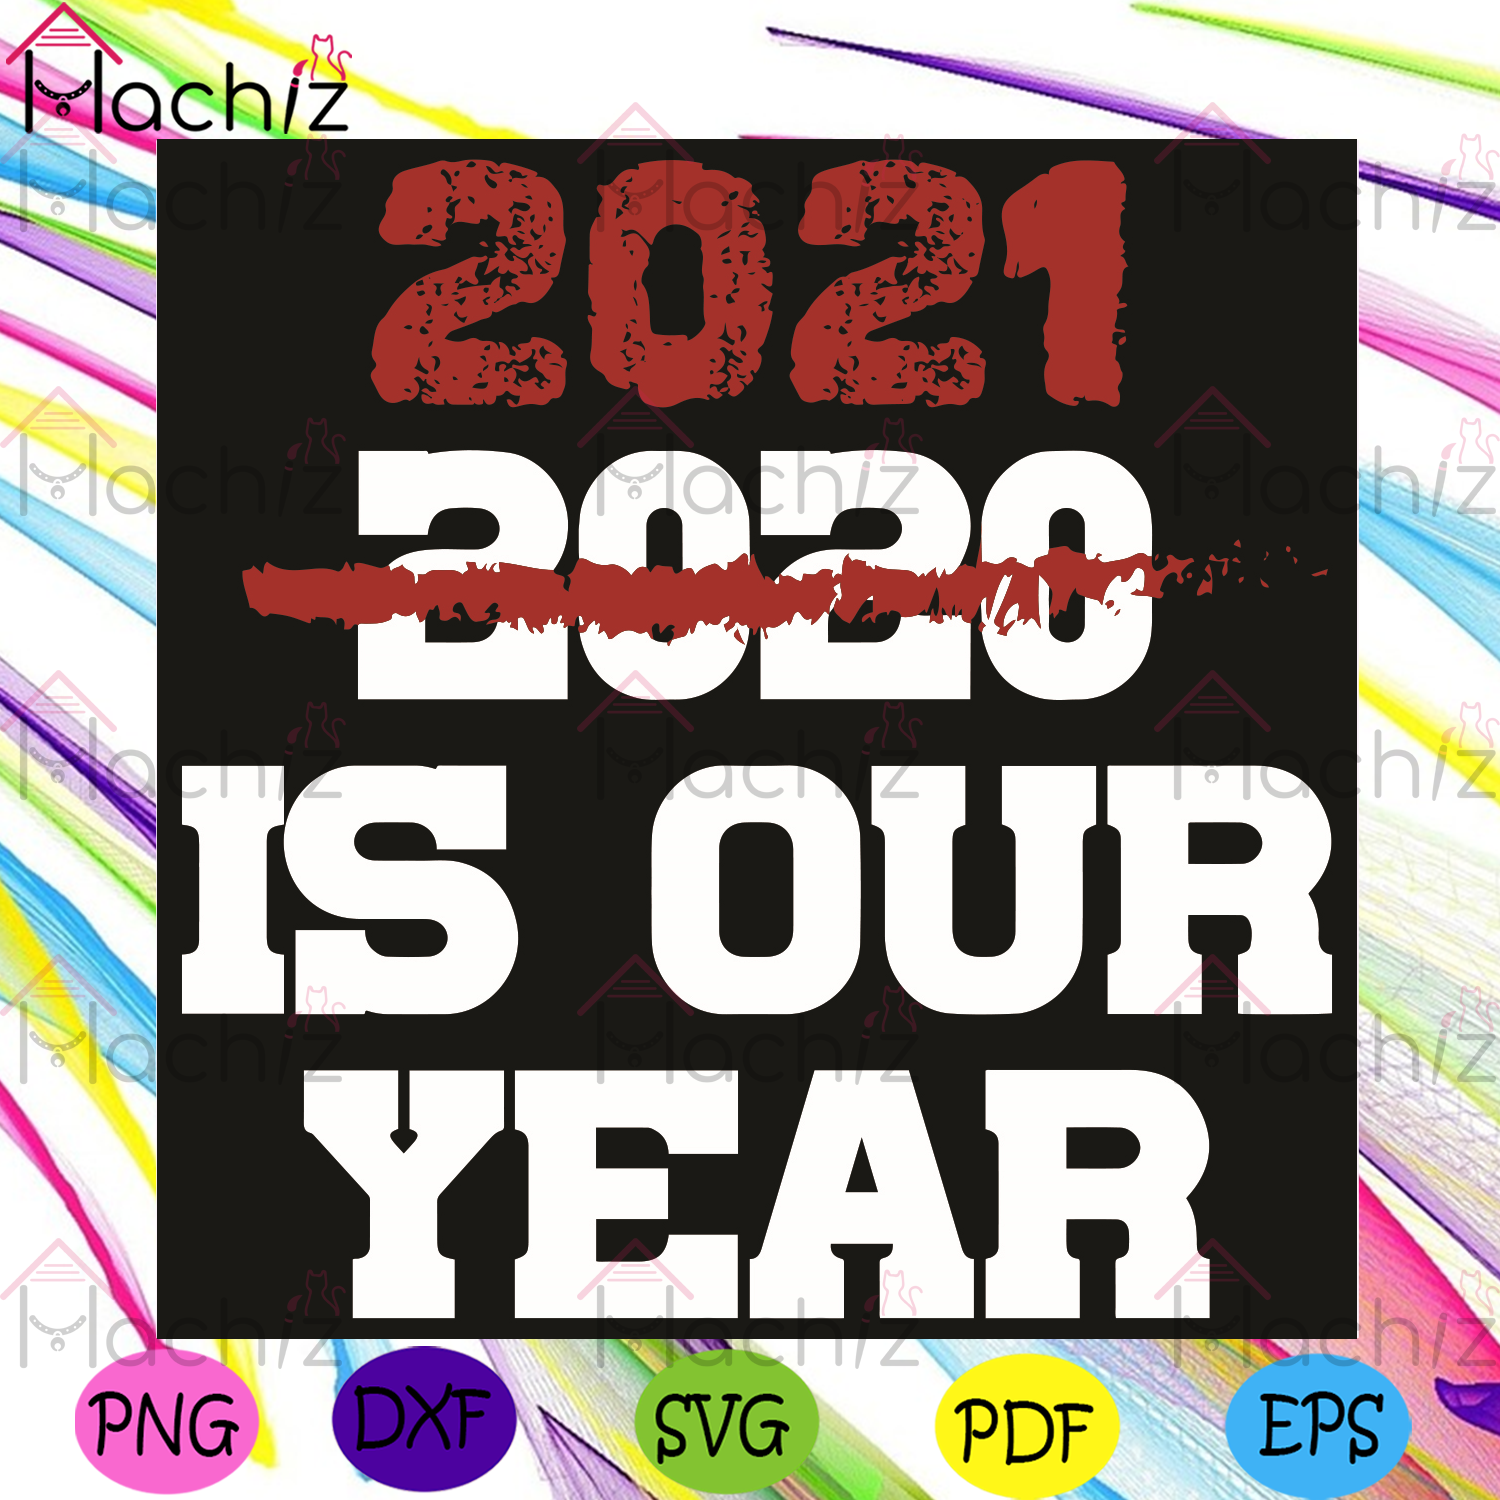 2021 Is Our Year Svg, Trending Svg, Happy New Year 2021 Svg, New Year Svg, 2021 Svg, 2020 Svg, New Me Svg, New Year Party Svg, Drink Svg, Forget 2020 Svg, Goodbye 2020 Svg Rough Year Svg, Quarantine Svg, Coronavirus Svg